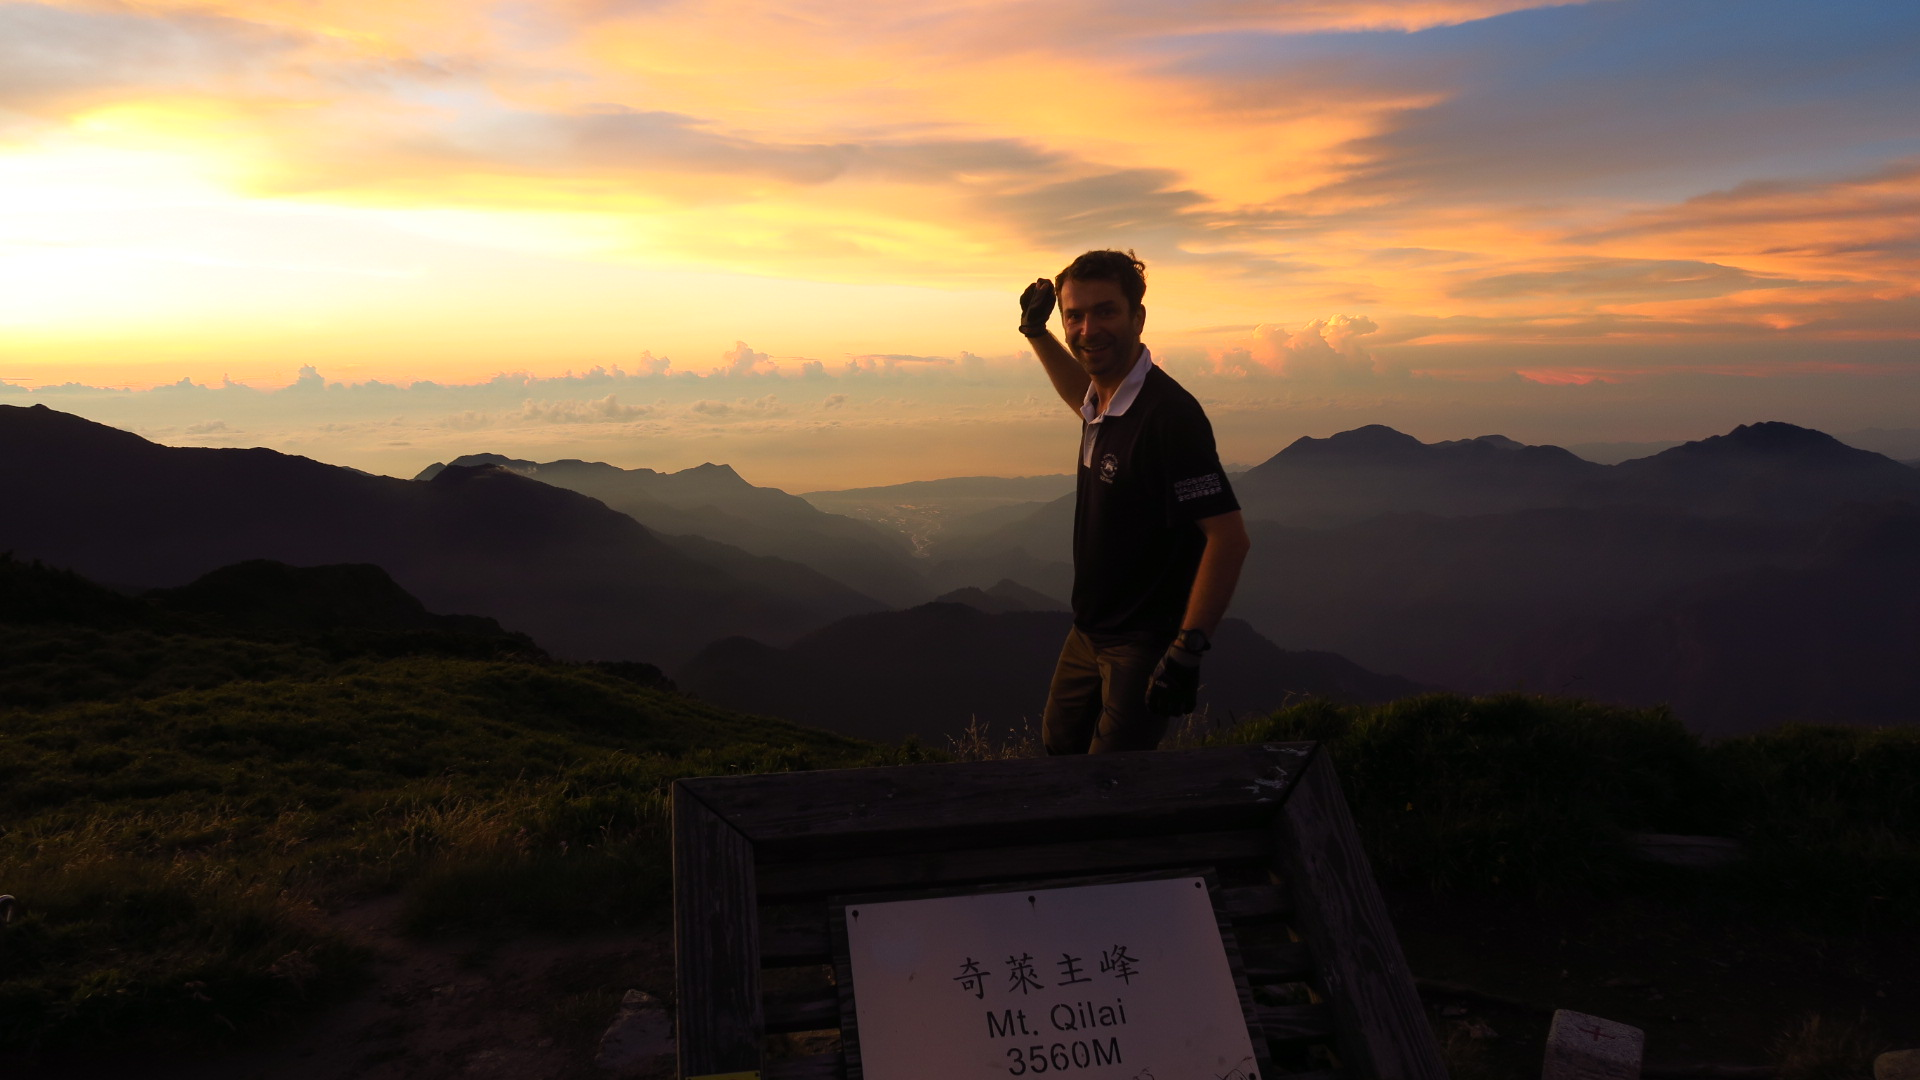 Krzysztof Kostienko at Sunrise at 5:30 AM on Mt. Qulai Taiwan. KK is practicing squash swing after 2 hours hike.   Last year a biker, this year a hiker; lost the bike but are they the same gloves ??